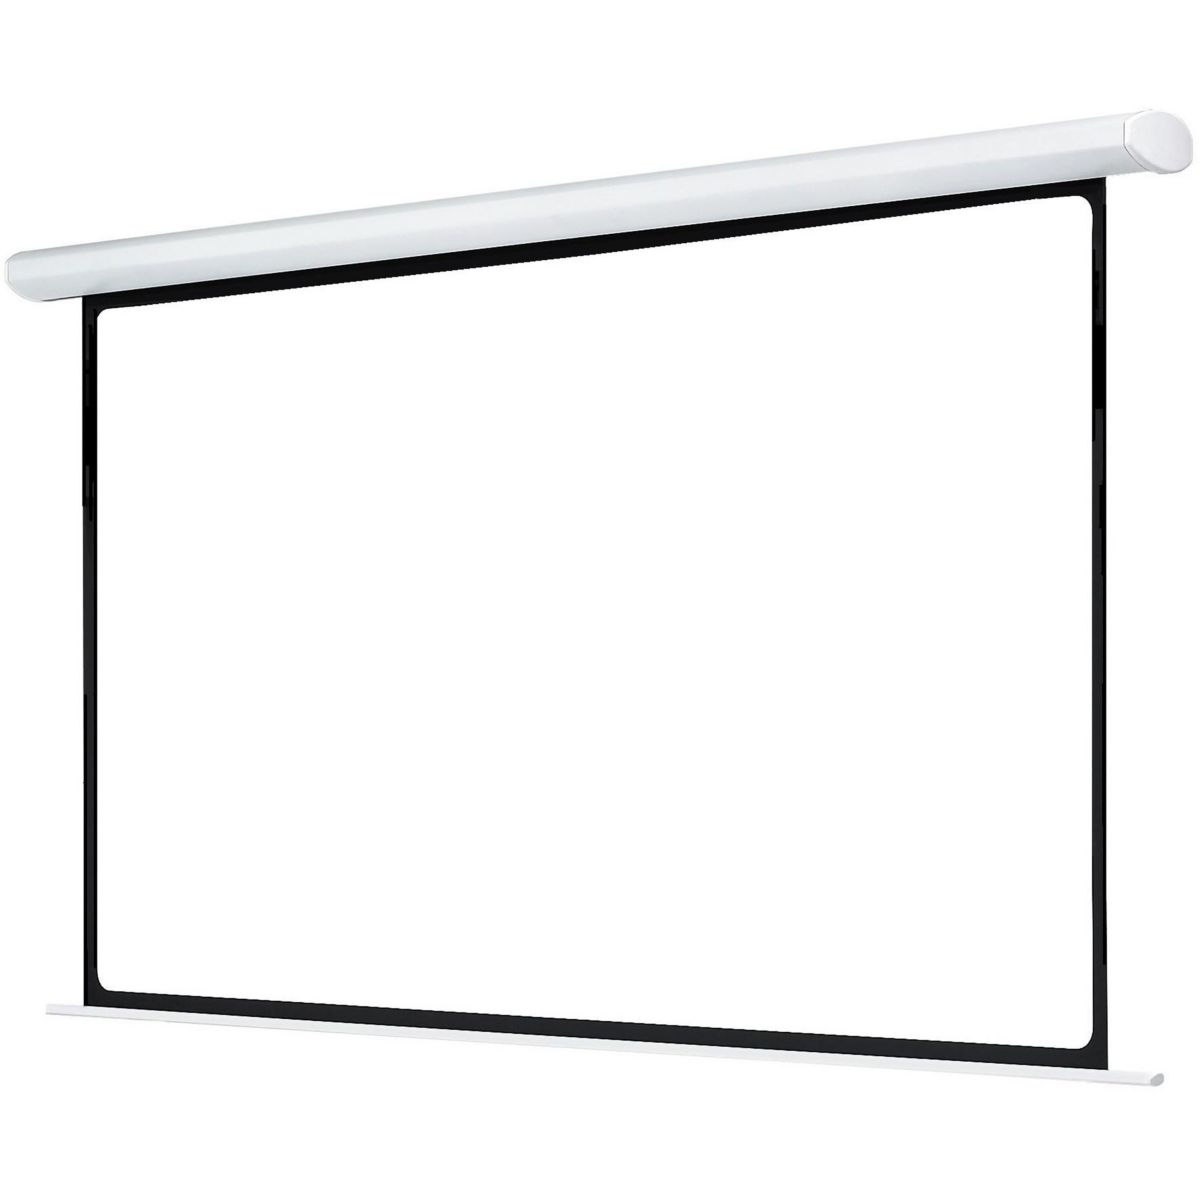 Ecran de projection oray hcm4sb1 180x240 4/3 motoris� - 20% de remise imm�diate avec le code : deal20 (photo)